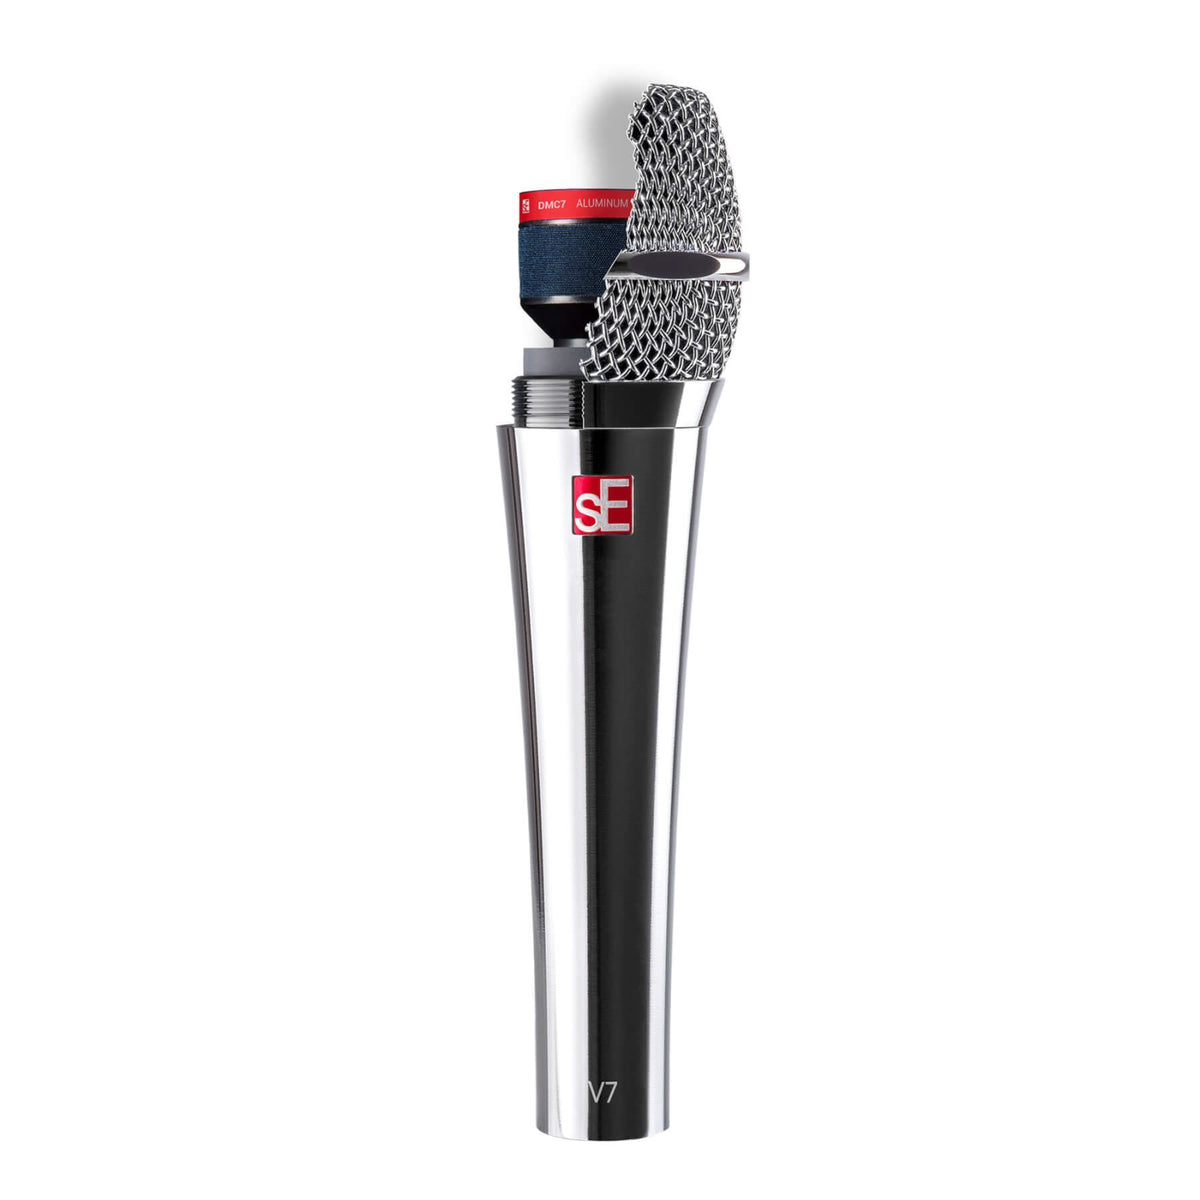 sE Electronics V7 Chrome Microphone w/ Mic Stand &20-foot XLR Cable Bundle